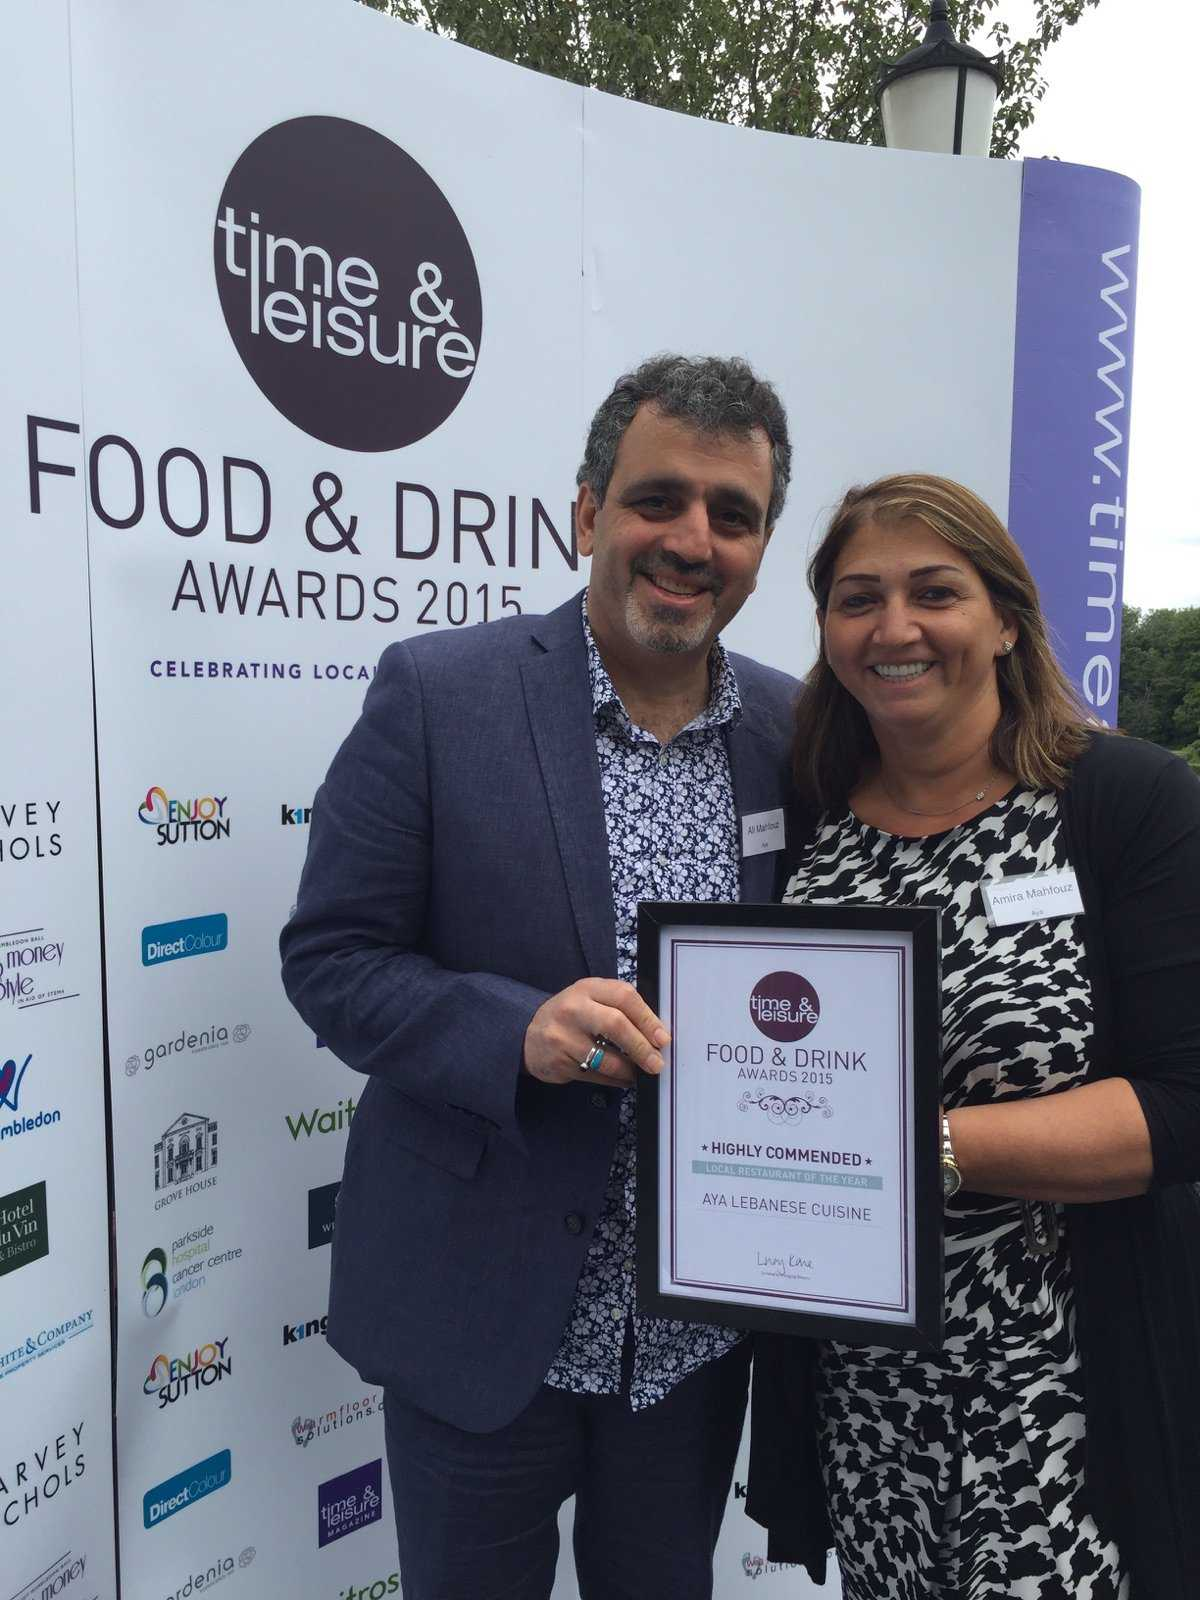 Time & Leisure Food Awards 2015